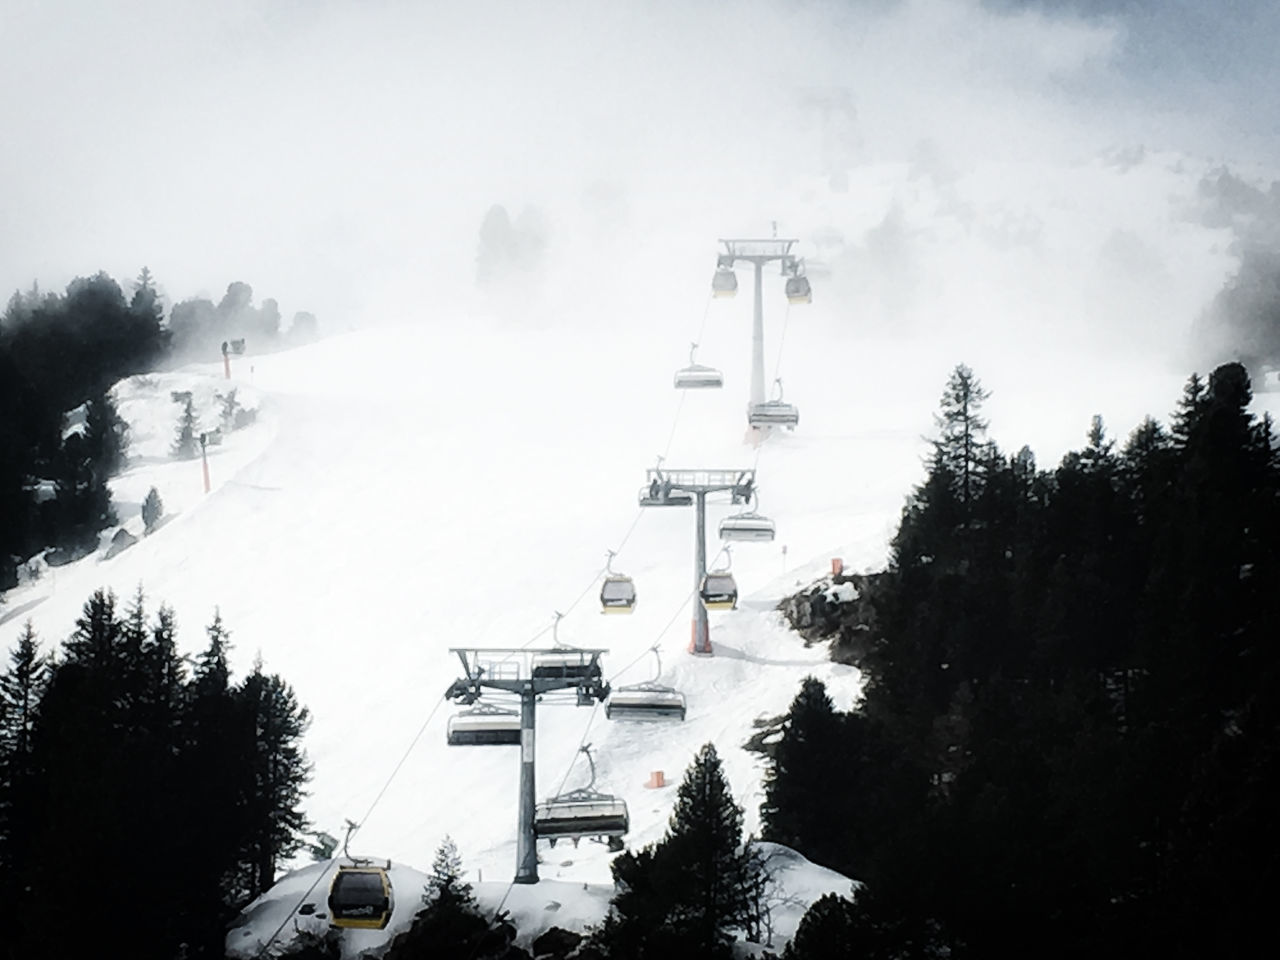 tree, outdoors, winter, nature, snow, mountain, day, cold temperature, fog, no people, sky, transportation, scenics, beauty in nature, architecture, travel destinations, building exterior, ski lift